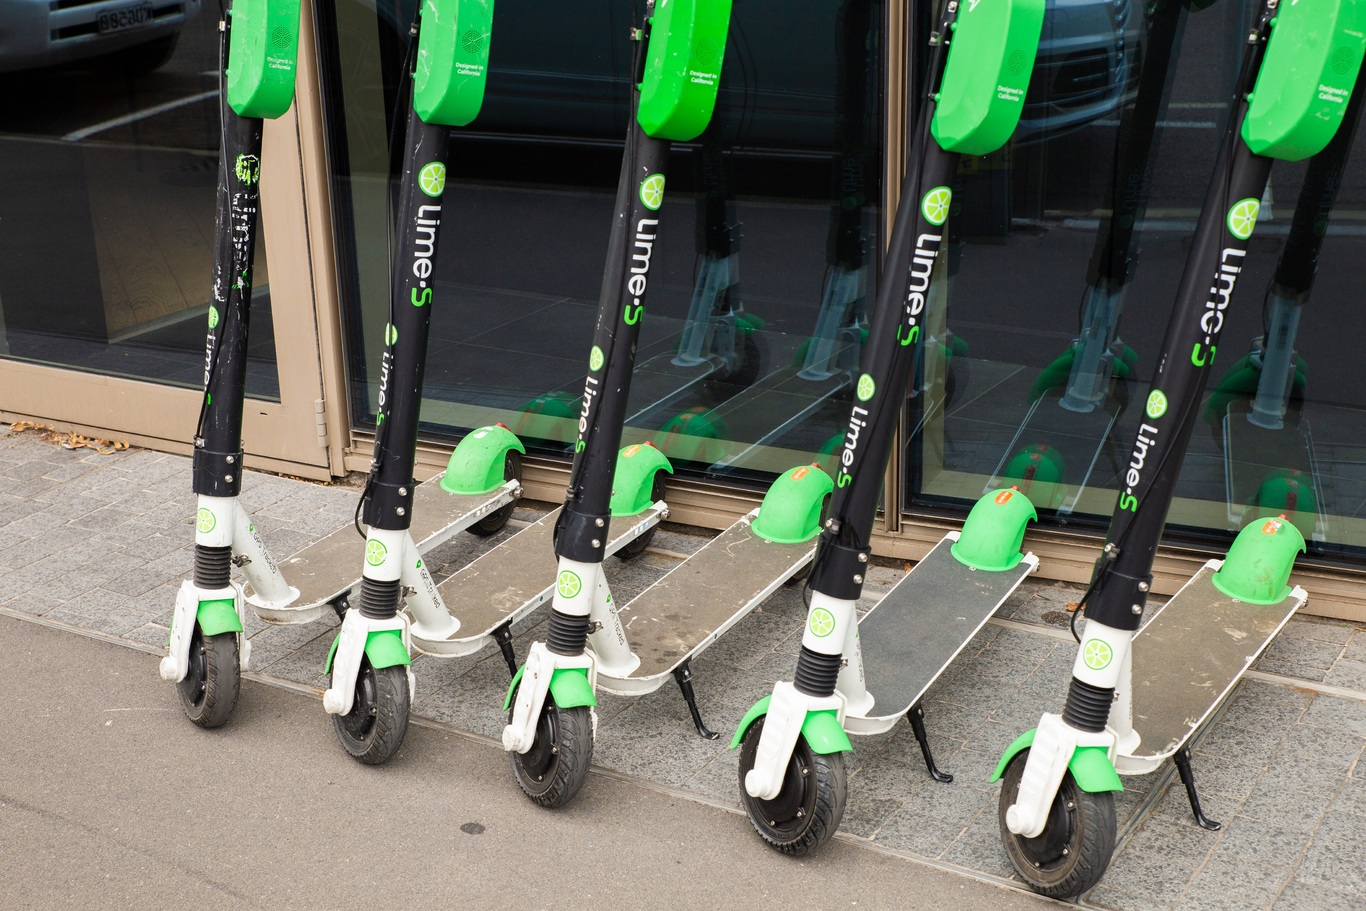 Electric Scooter Giant Lime Has Ireland In Its Sights As Part Of A European Push